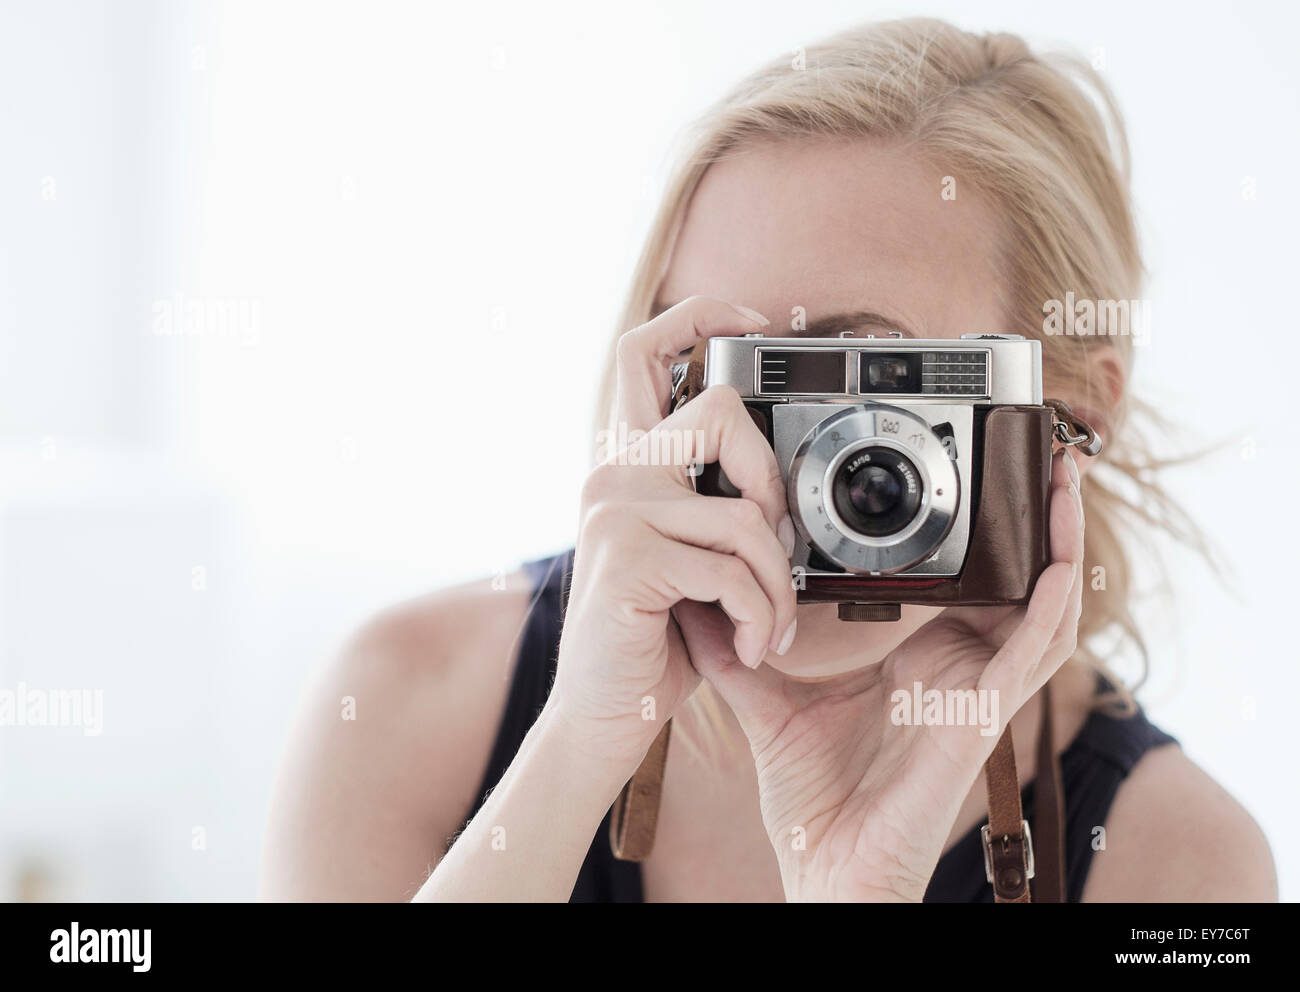 Woman taking photo with digital camera - Stock Image